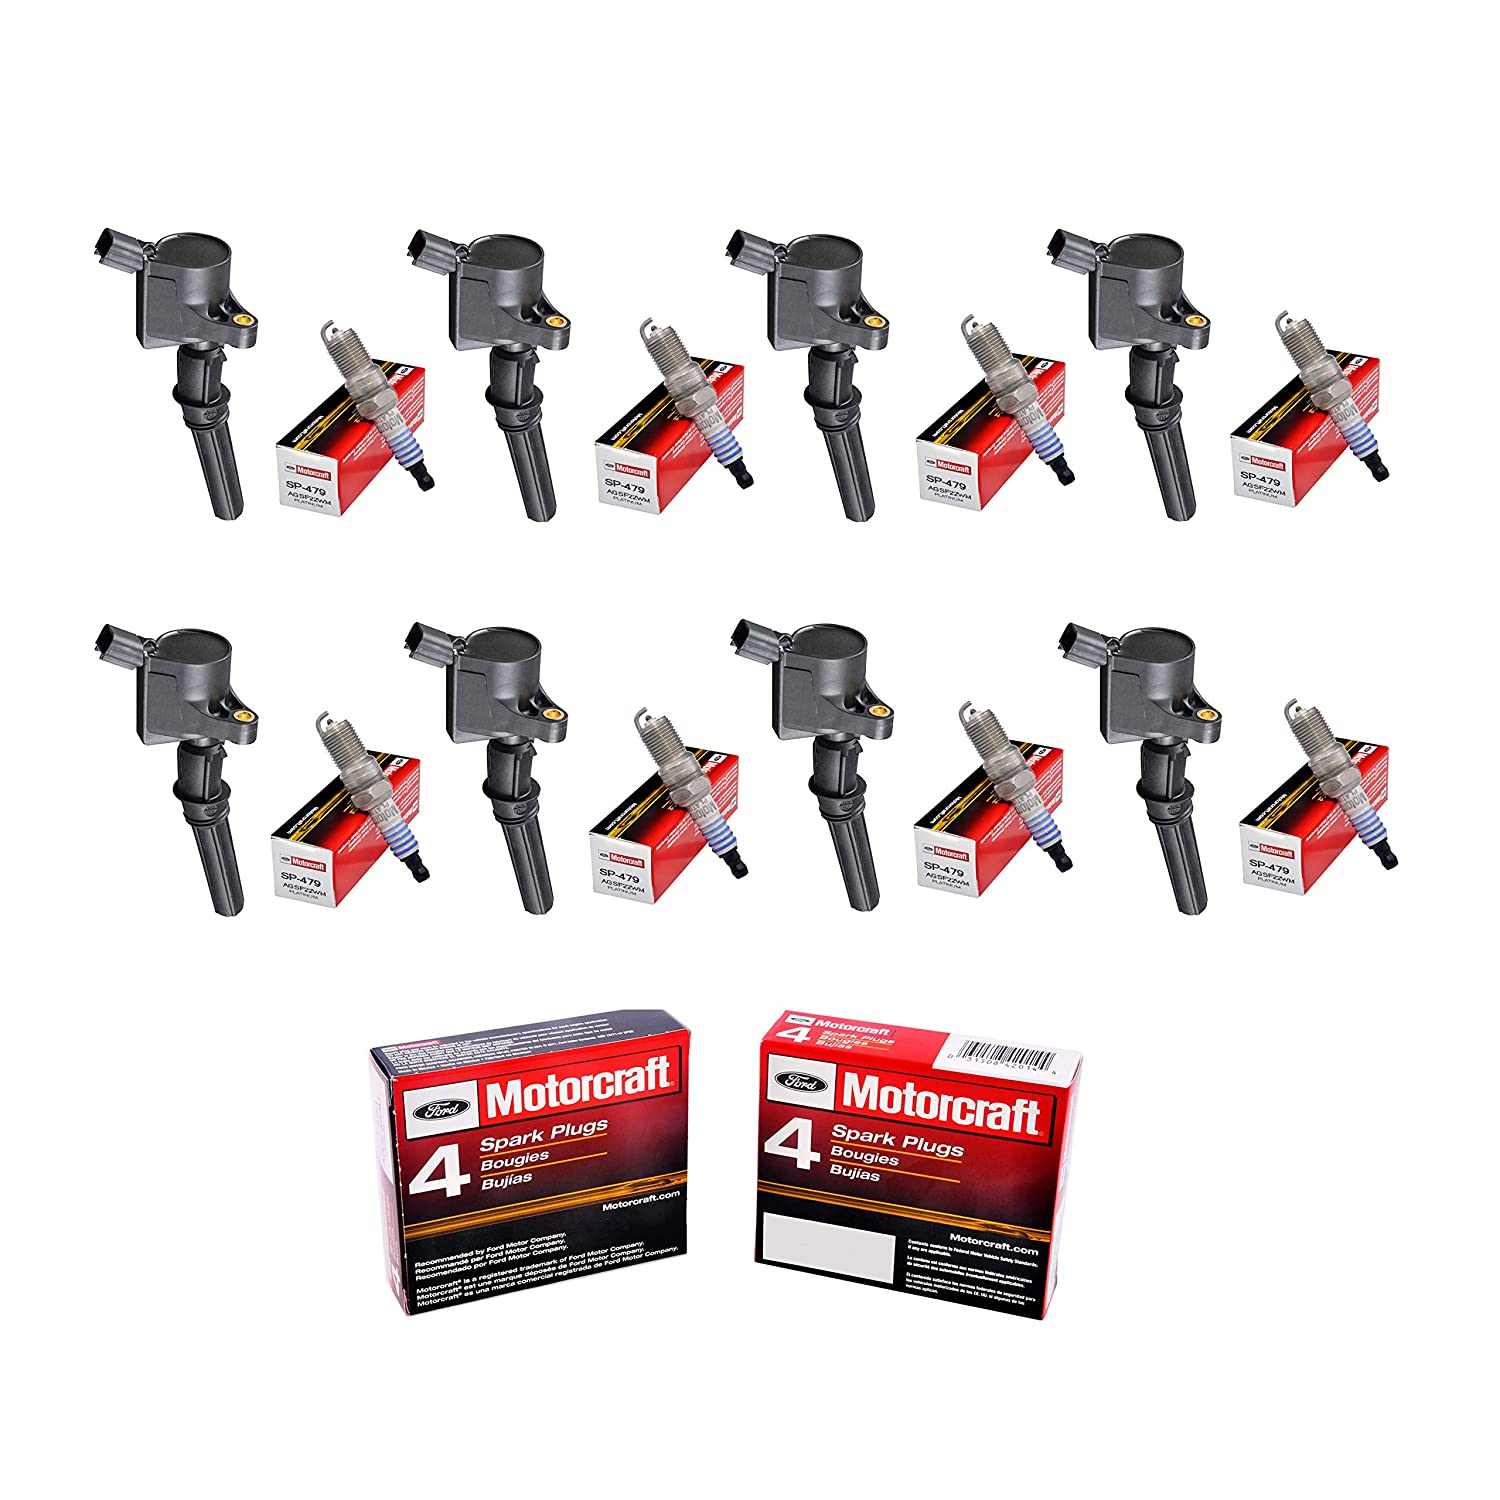 Set of 8 Aftermarket DG508 Ignition Coil & Motorcraft SP479 Platinum Spark Plug for Ford Crown Victoria Excursion Expedition Explorer F150 F250 F350 F450 ...